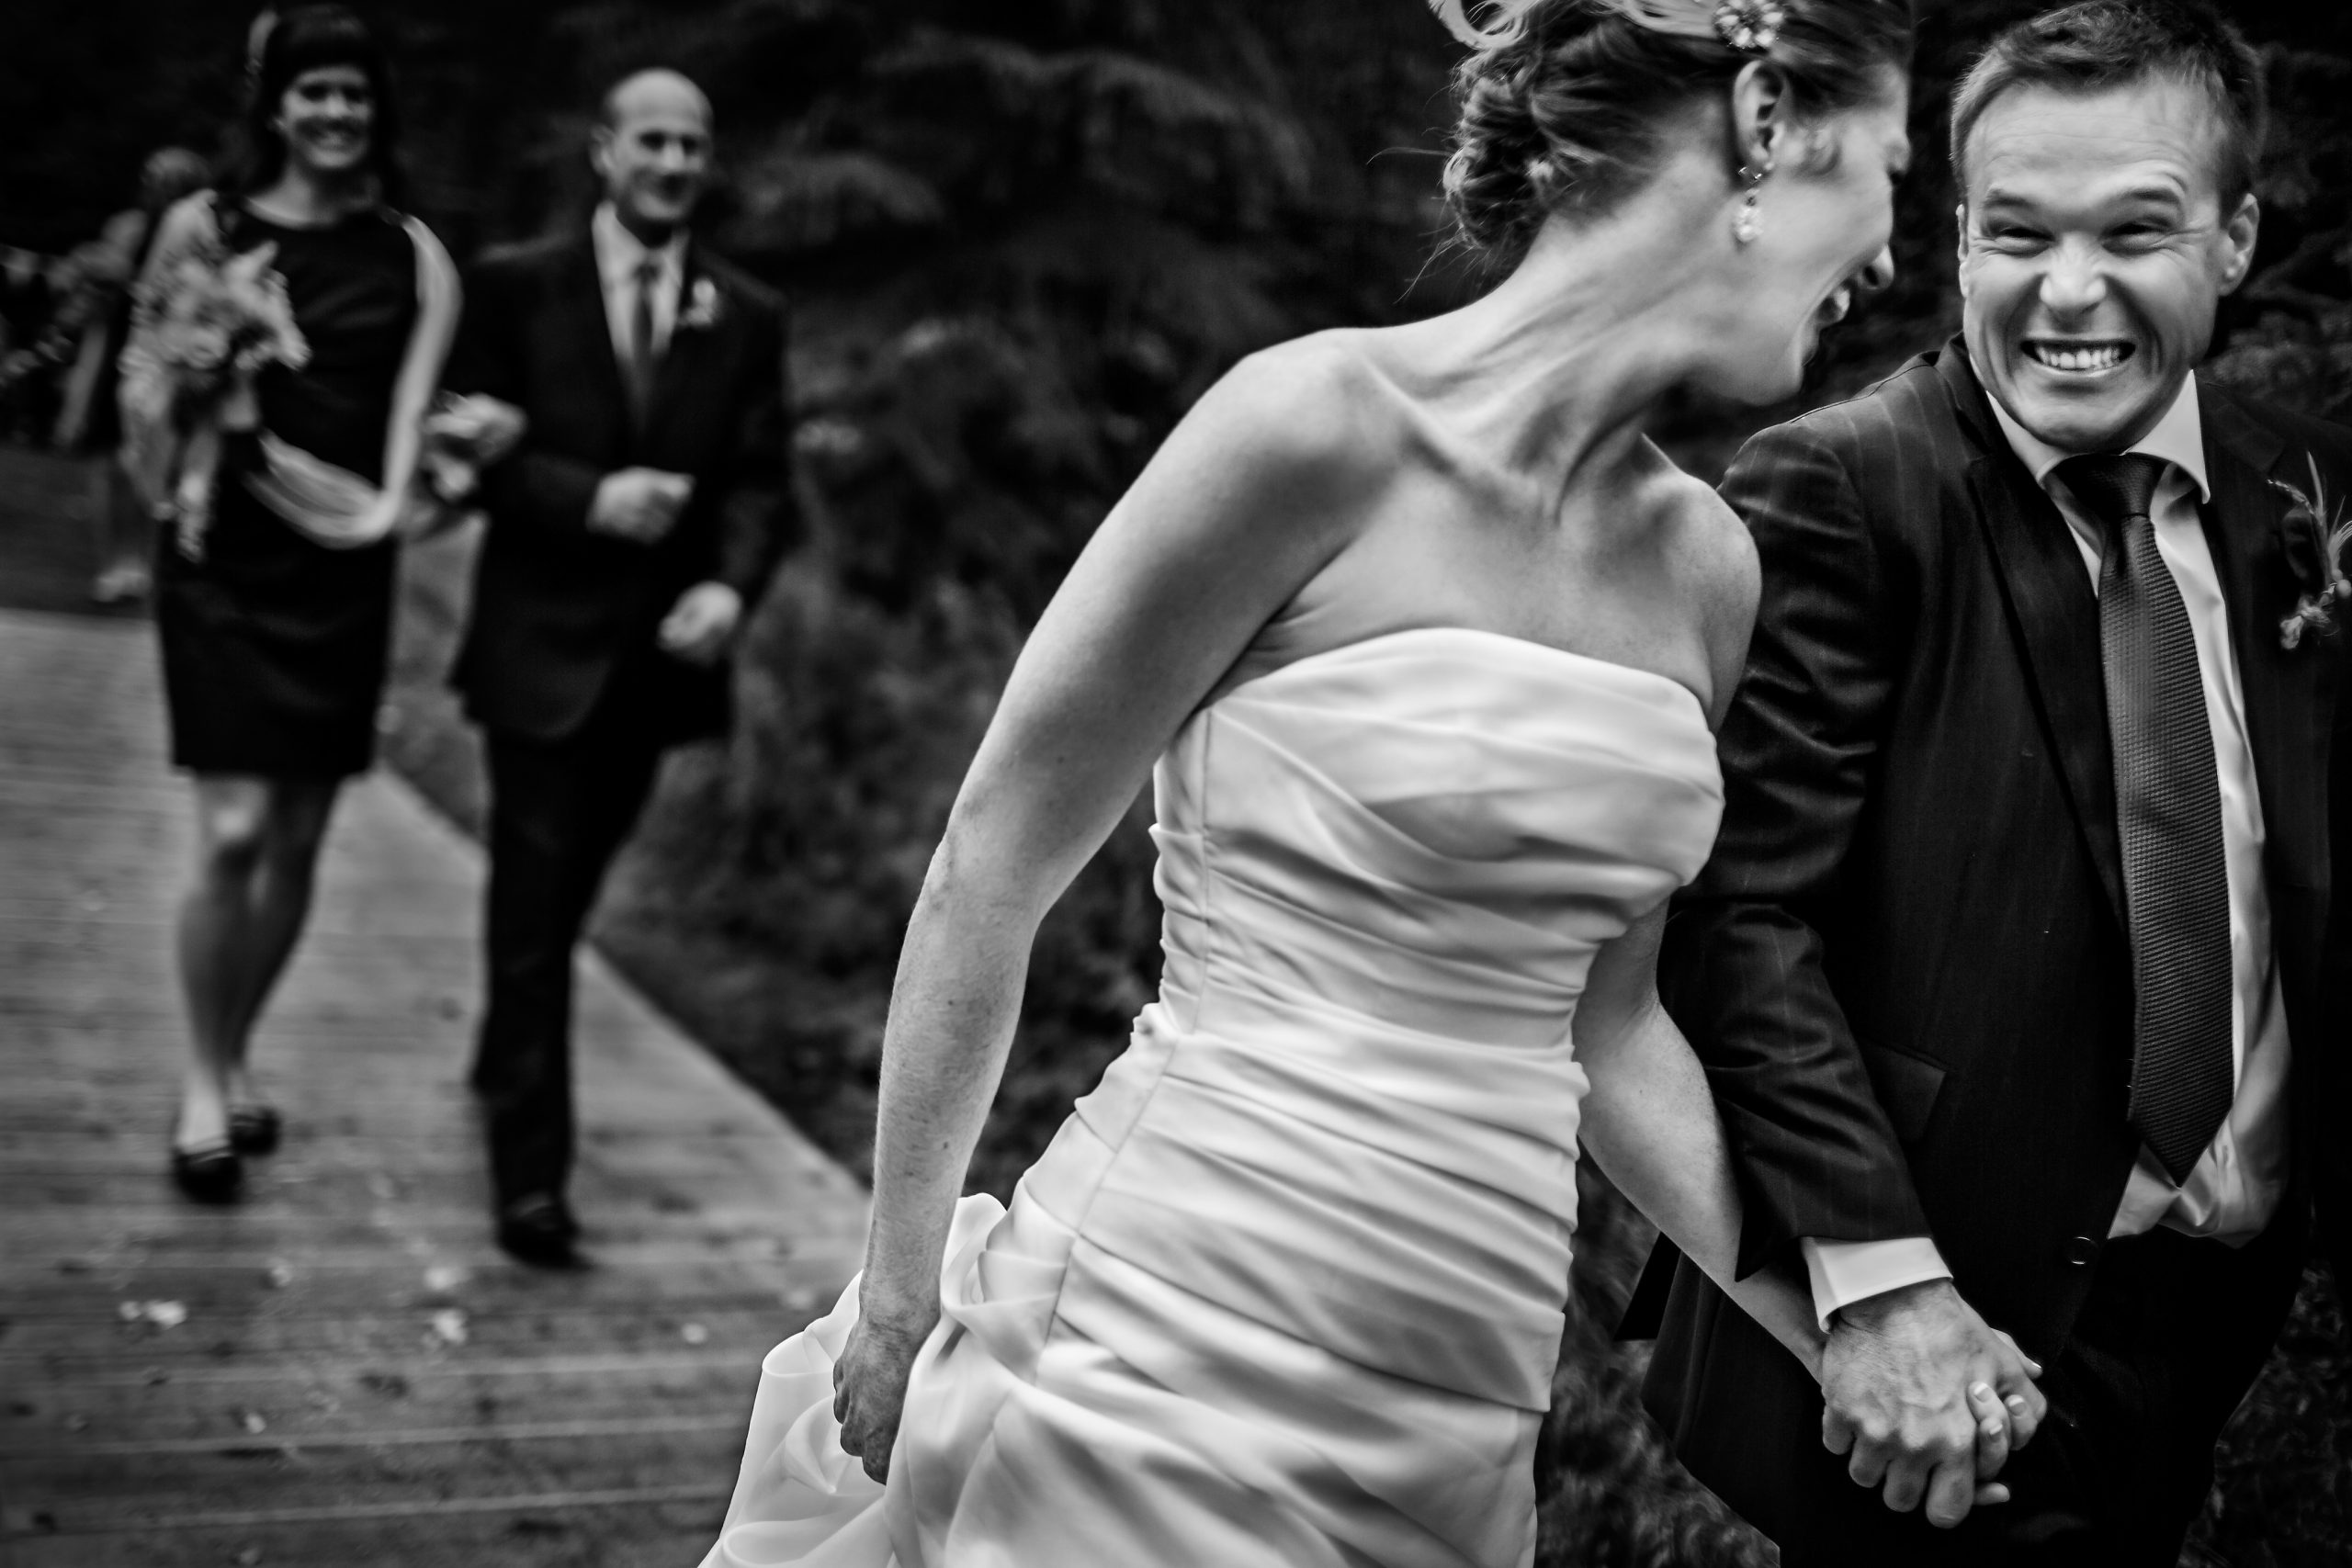 An ecstatic bride and groom walk ahead of bridesmaid and groomsmen